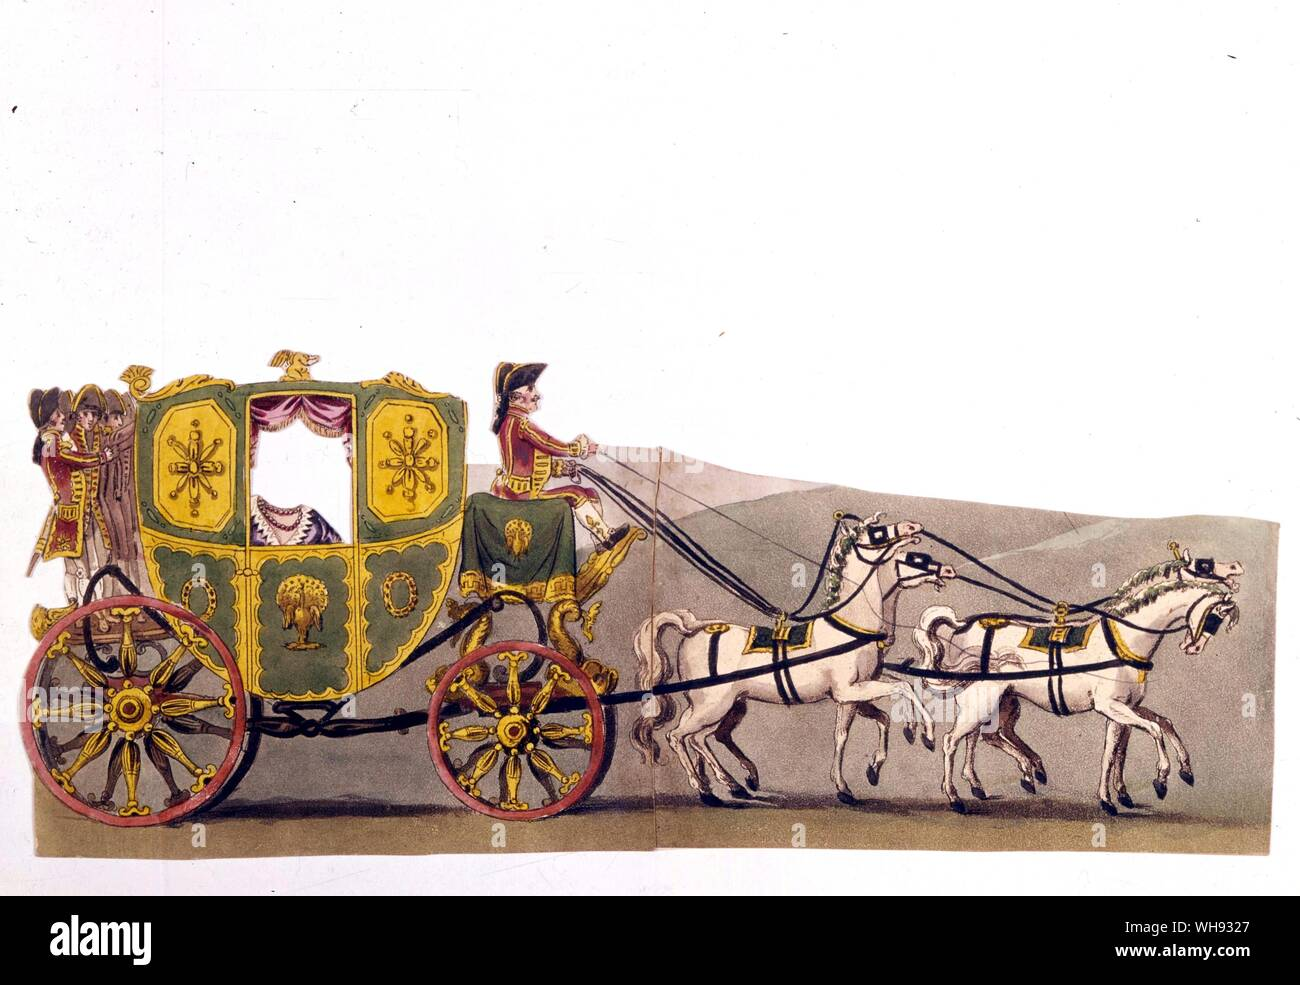 Cinderella's coach from a paper doll book, 1814.. Stock Photo